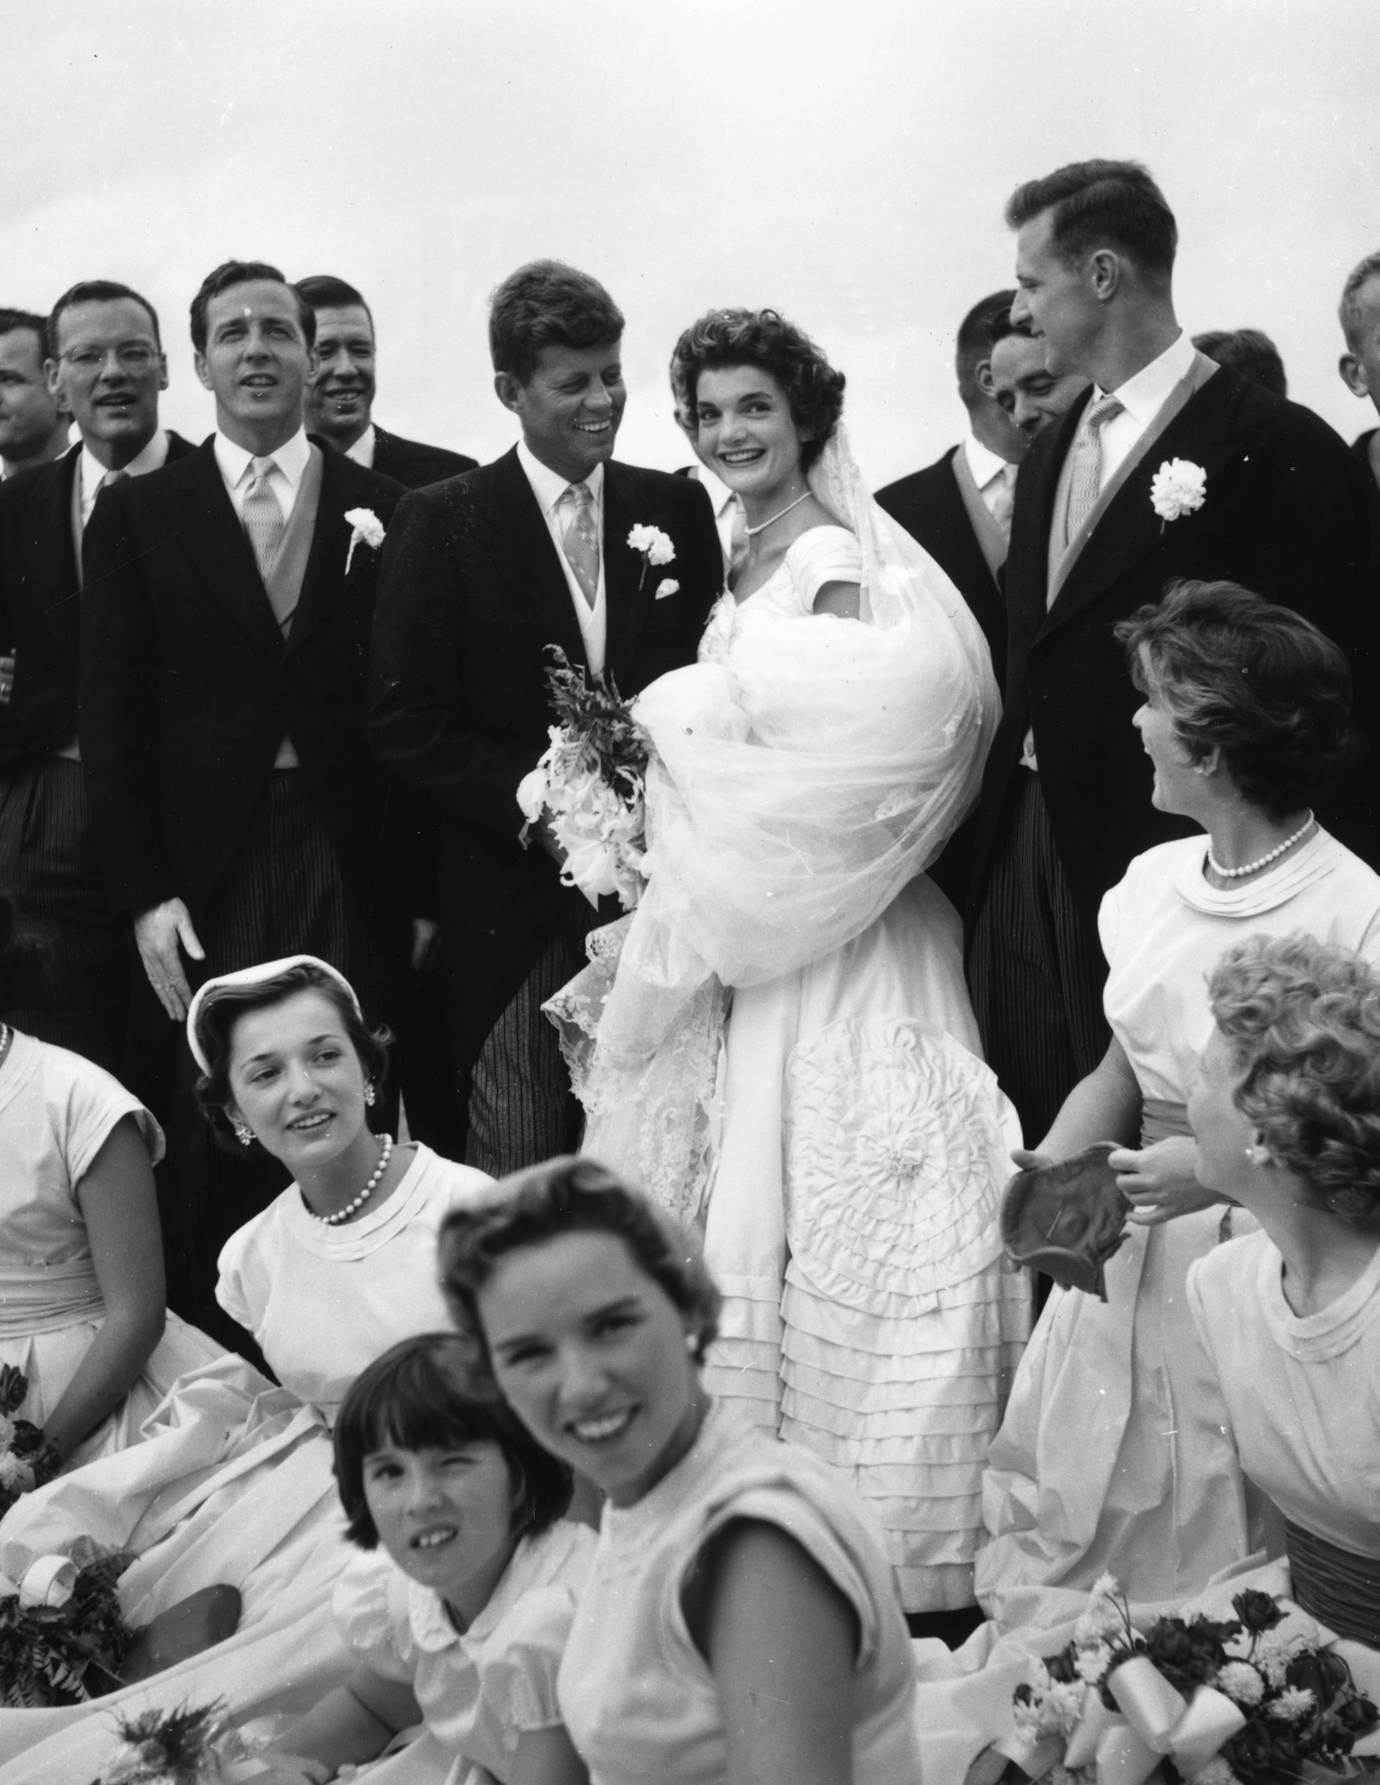 Wedding Photos of Jackie Kennedy and John F  Kennedy - Jacqueline